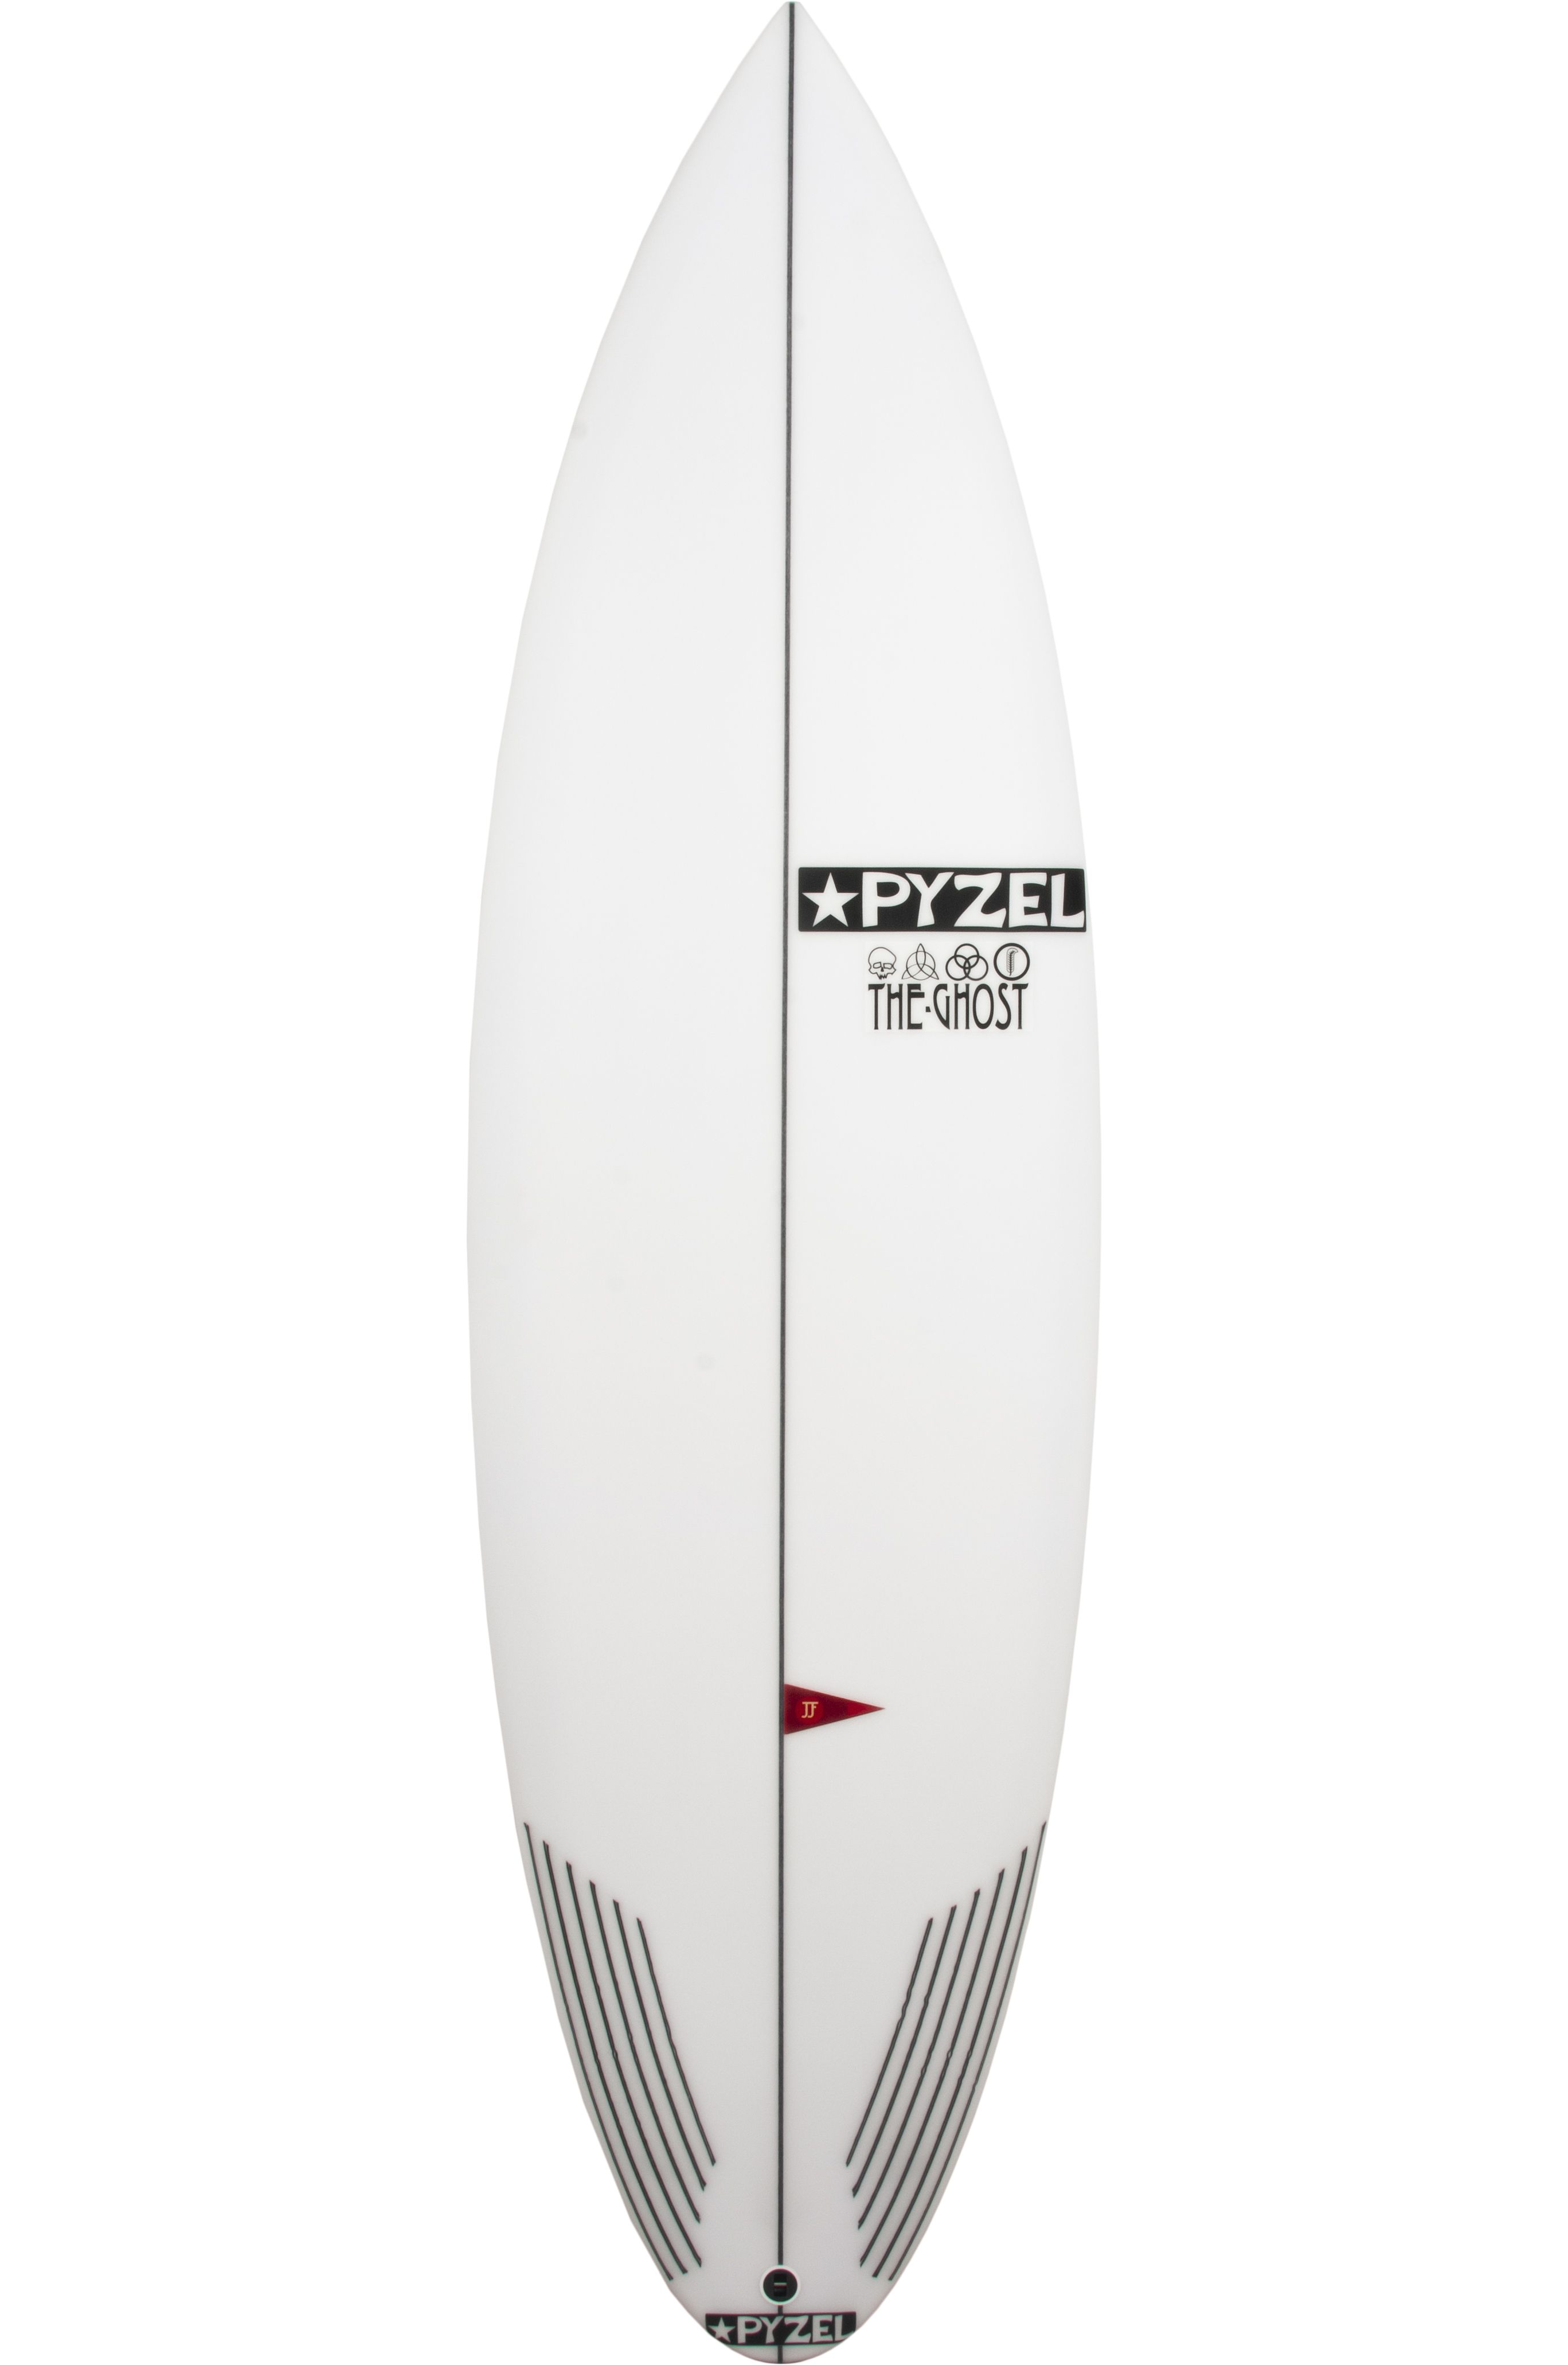 Prancha Surf Pyzel GHOST 6'1 Round Pin Tail - White FCS II Multisystem 6ft1